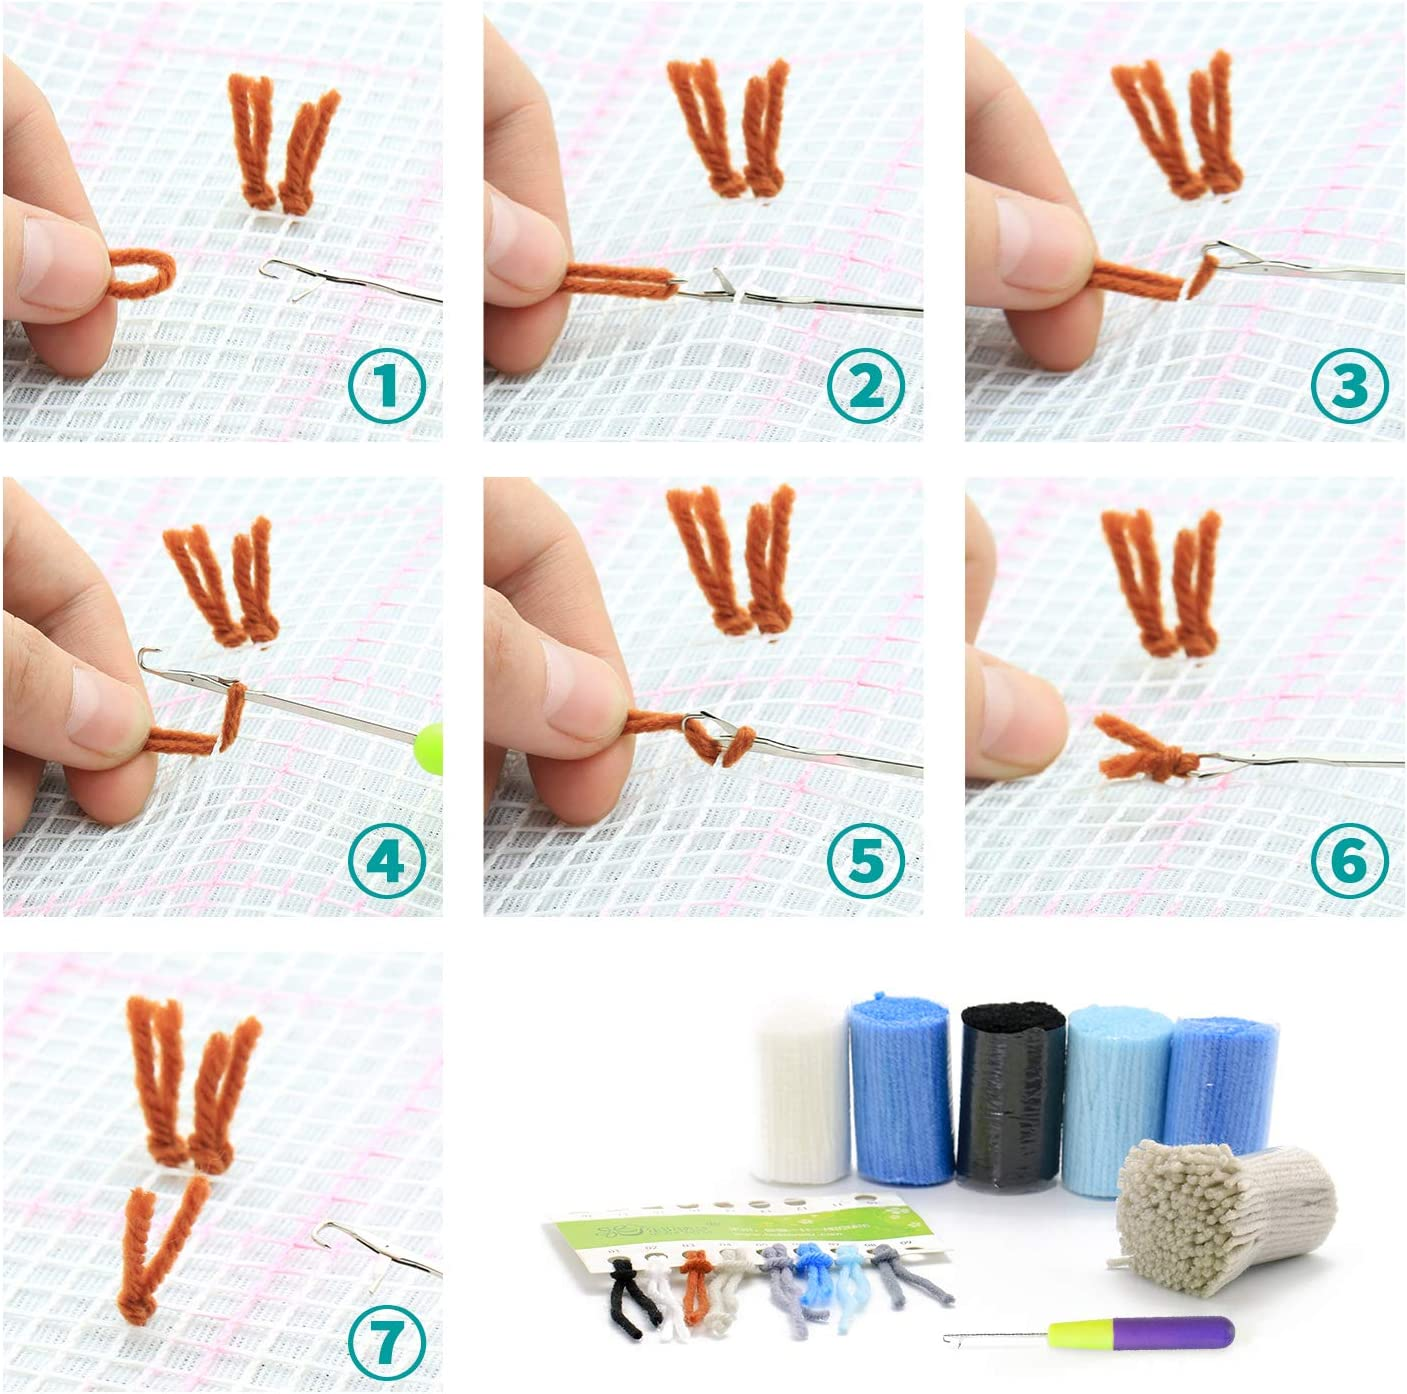 MLADEN Latch Hook Kits DIY Tools Crocheting Rug Embroidery Shaggy Decoration Family Gift and Activity 20 X 16.5 Brown